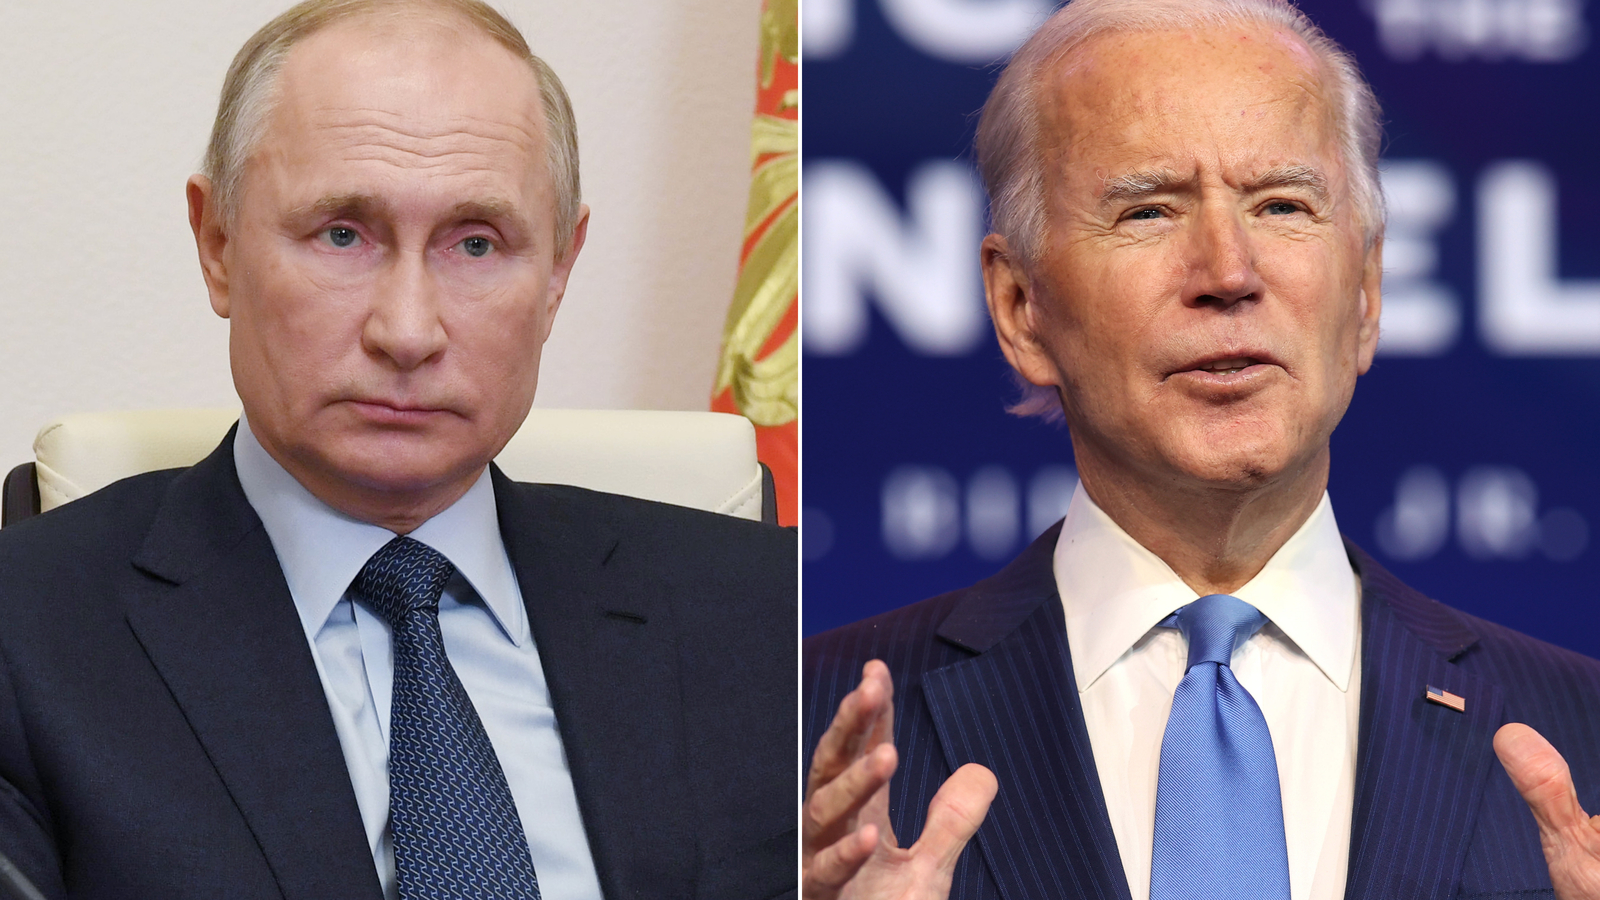 Biden confronts Putin over several issues in first call, White House says